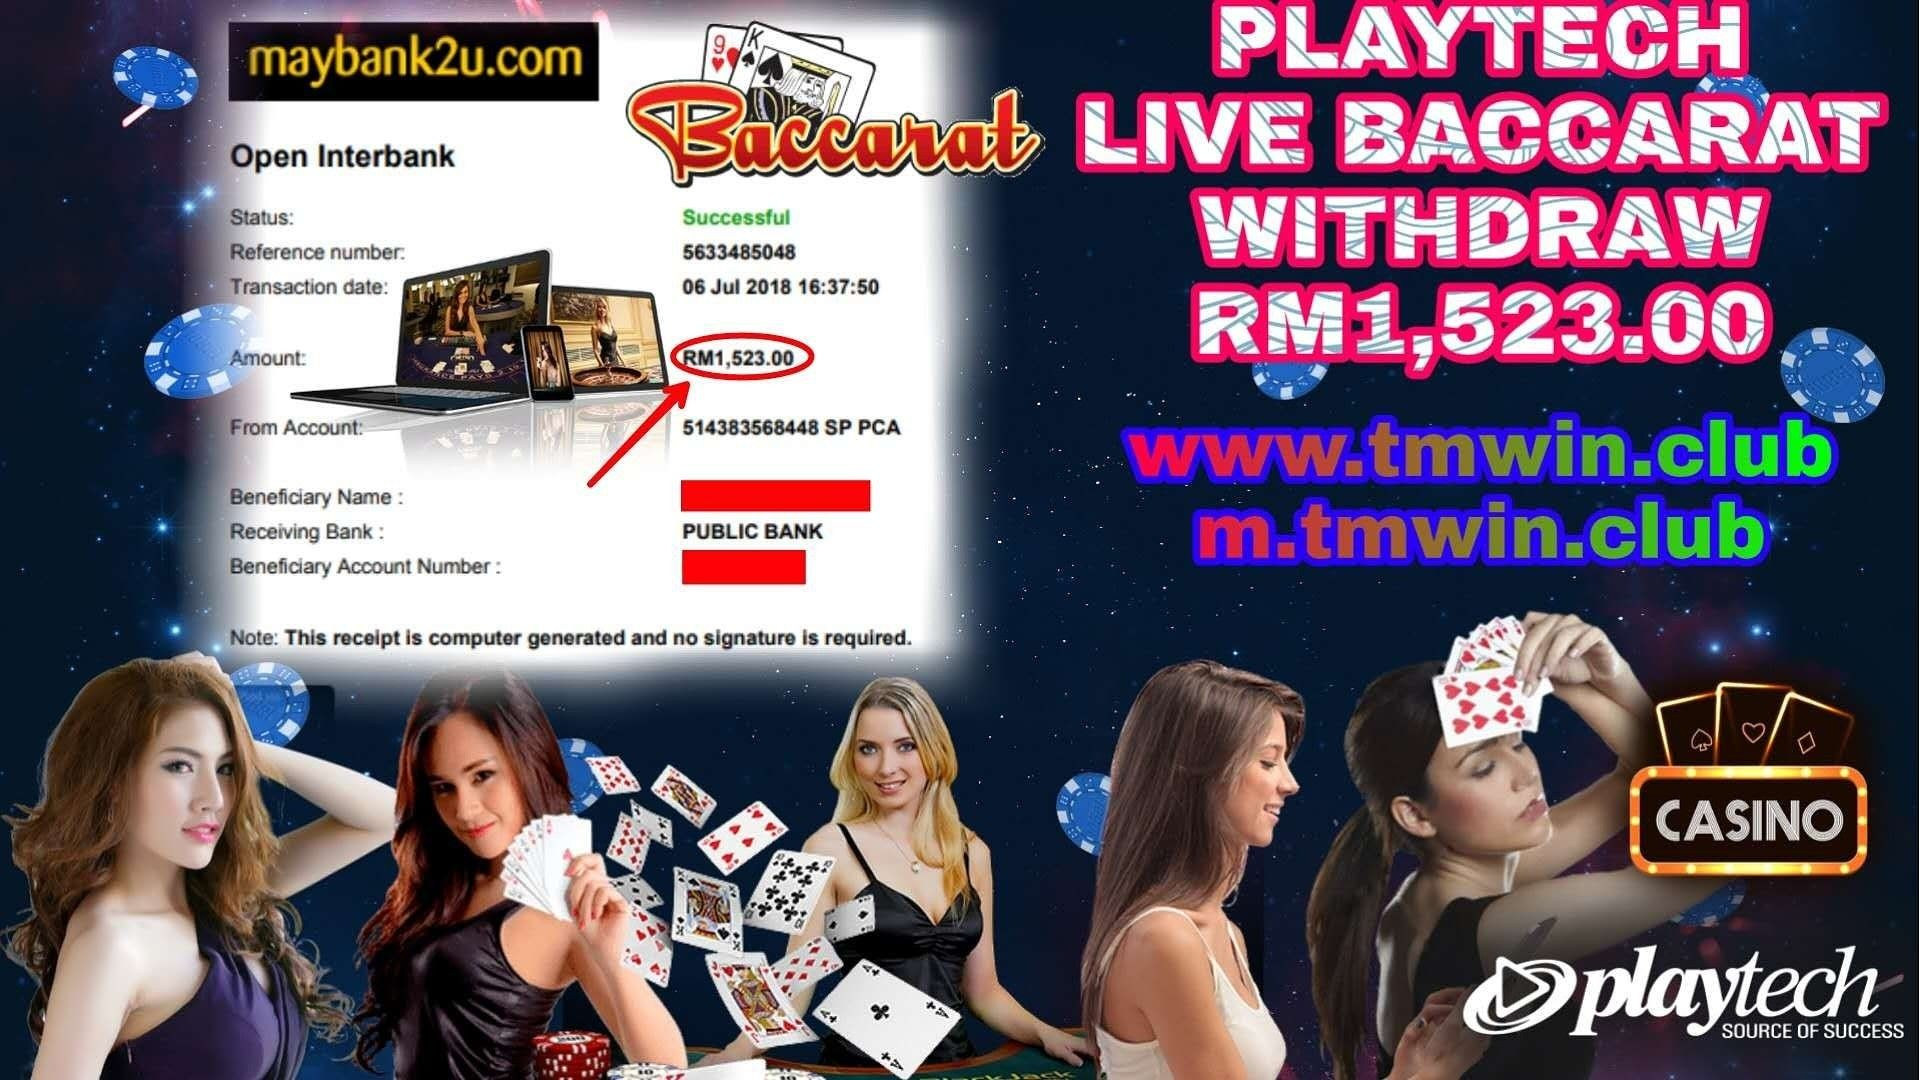 PLAYTECH Live Baccarat Withdraw RM1,523.00